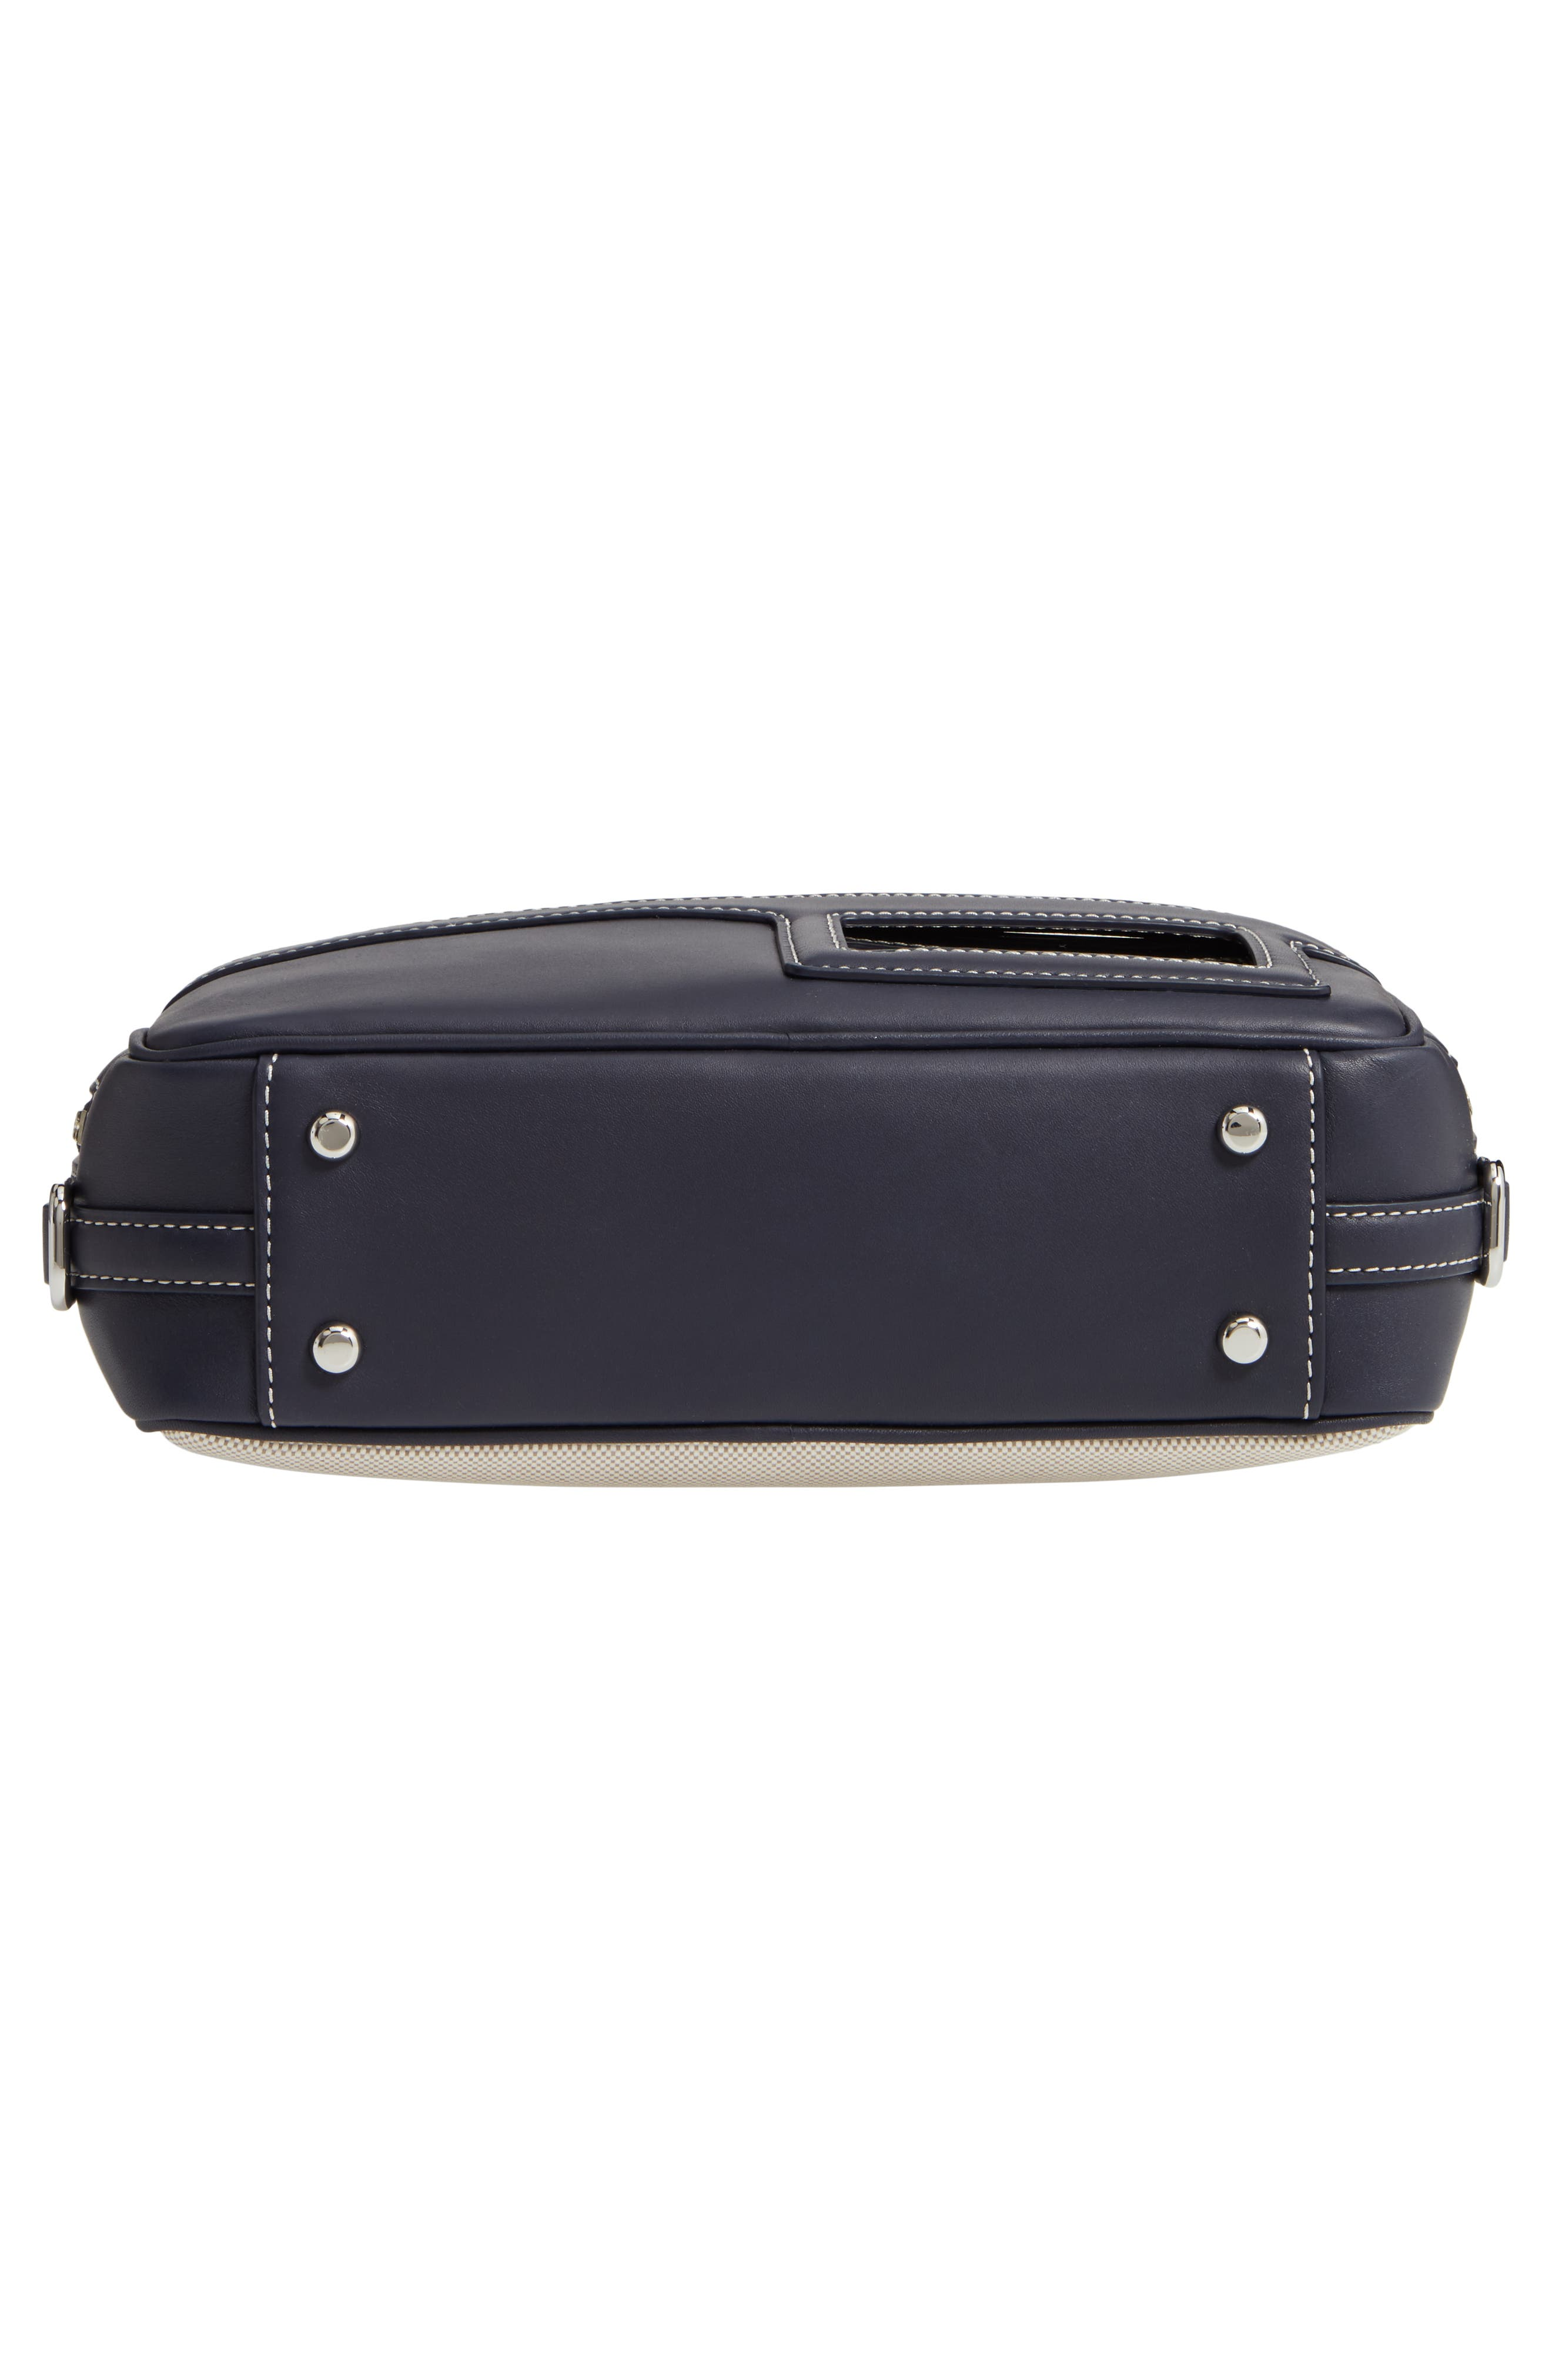 TORY BURCH, Leather & Canvas Camera Bag, Alternate thumbnail 7, color, MIDNIGHT